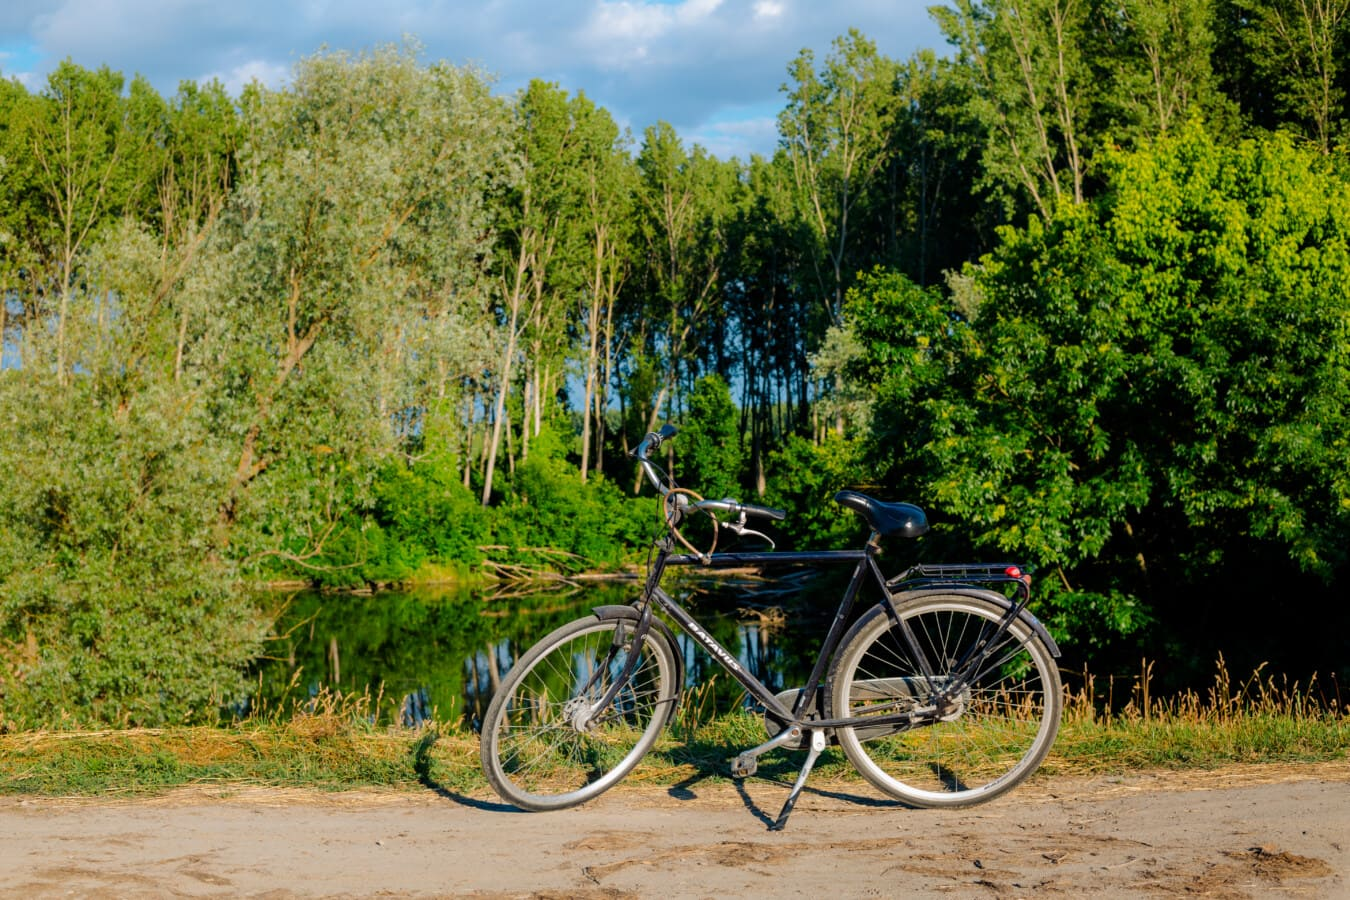 rural, road, bicycle, lakeside, forest, tree, cyclist, wheel, nature, summer